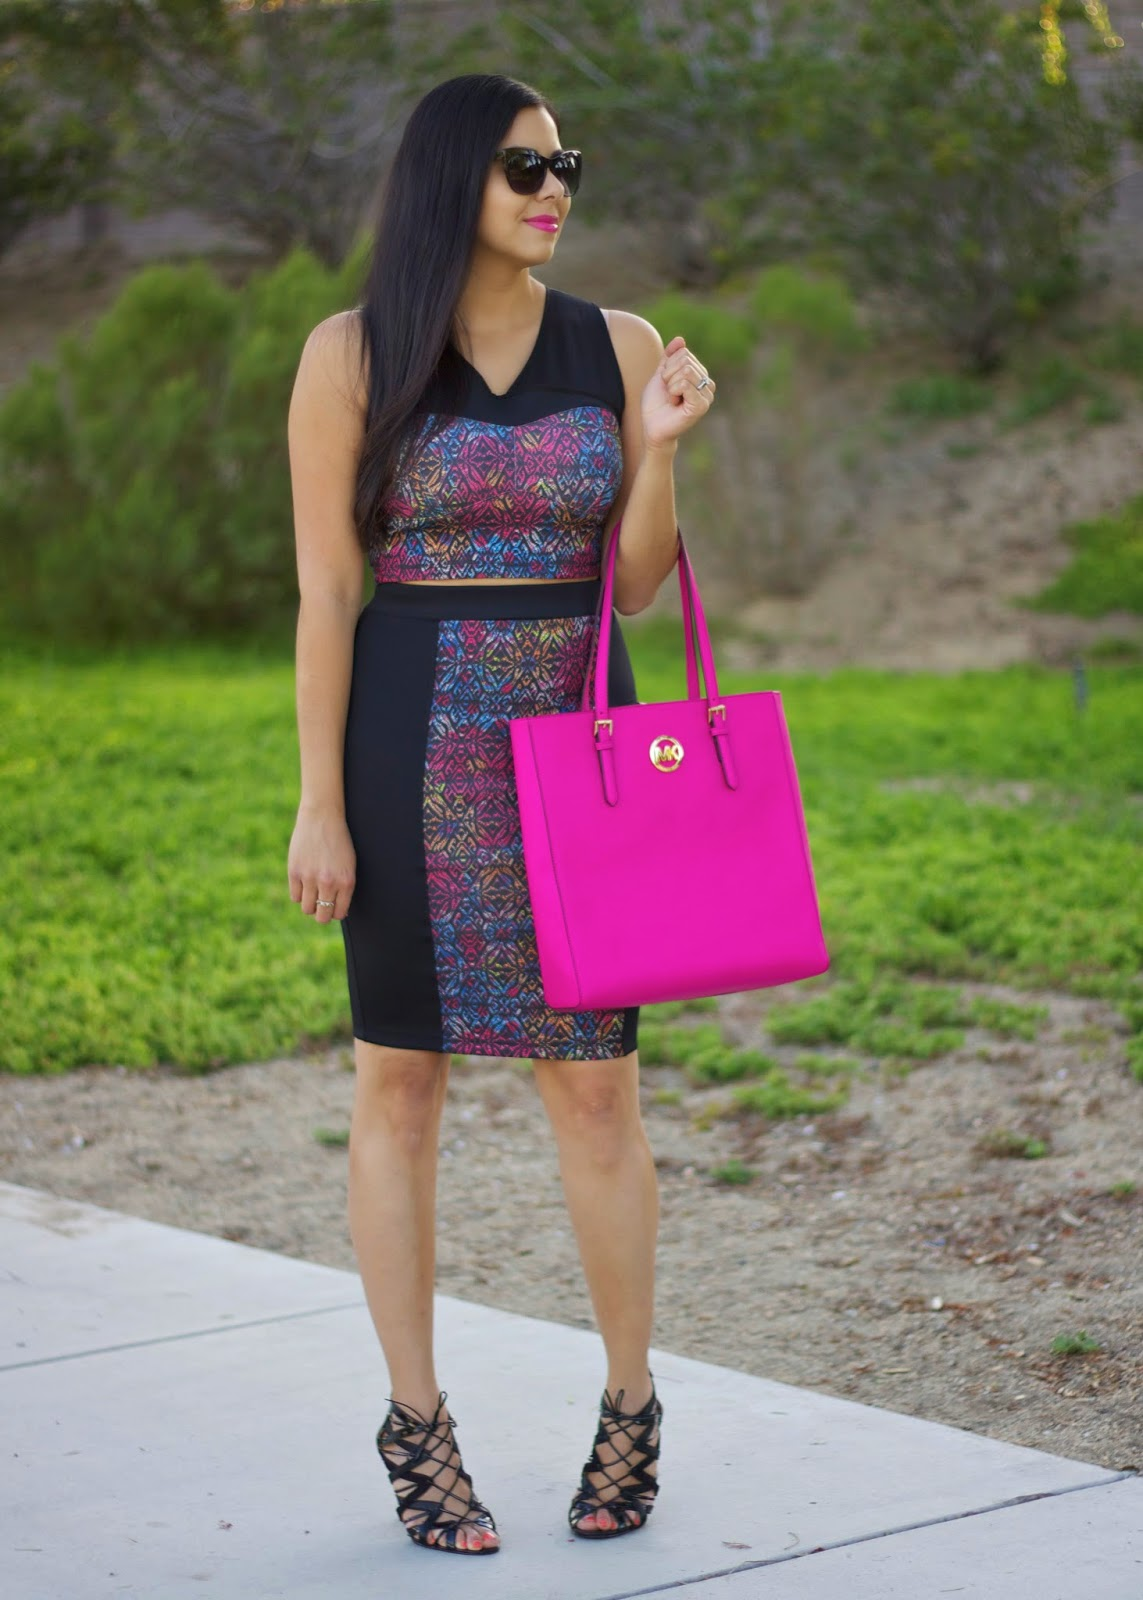 Matching crop top and pencil skirt, lace up heels with pencil skirt, san diego fashion blogger, san diego style blogger, best of san diego street style